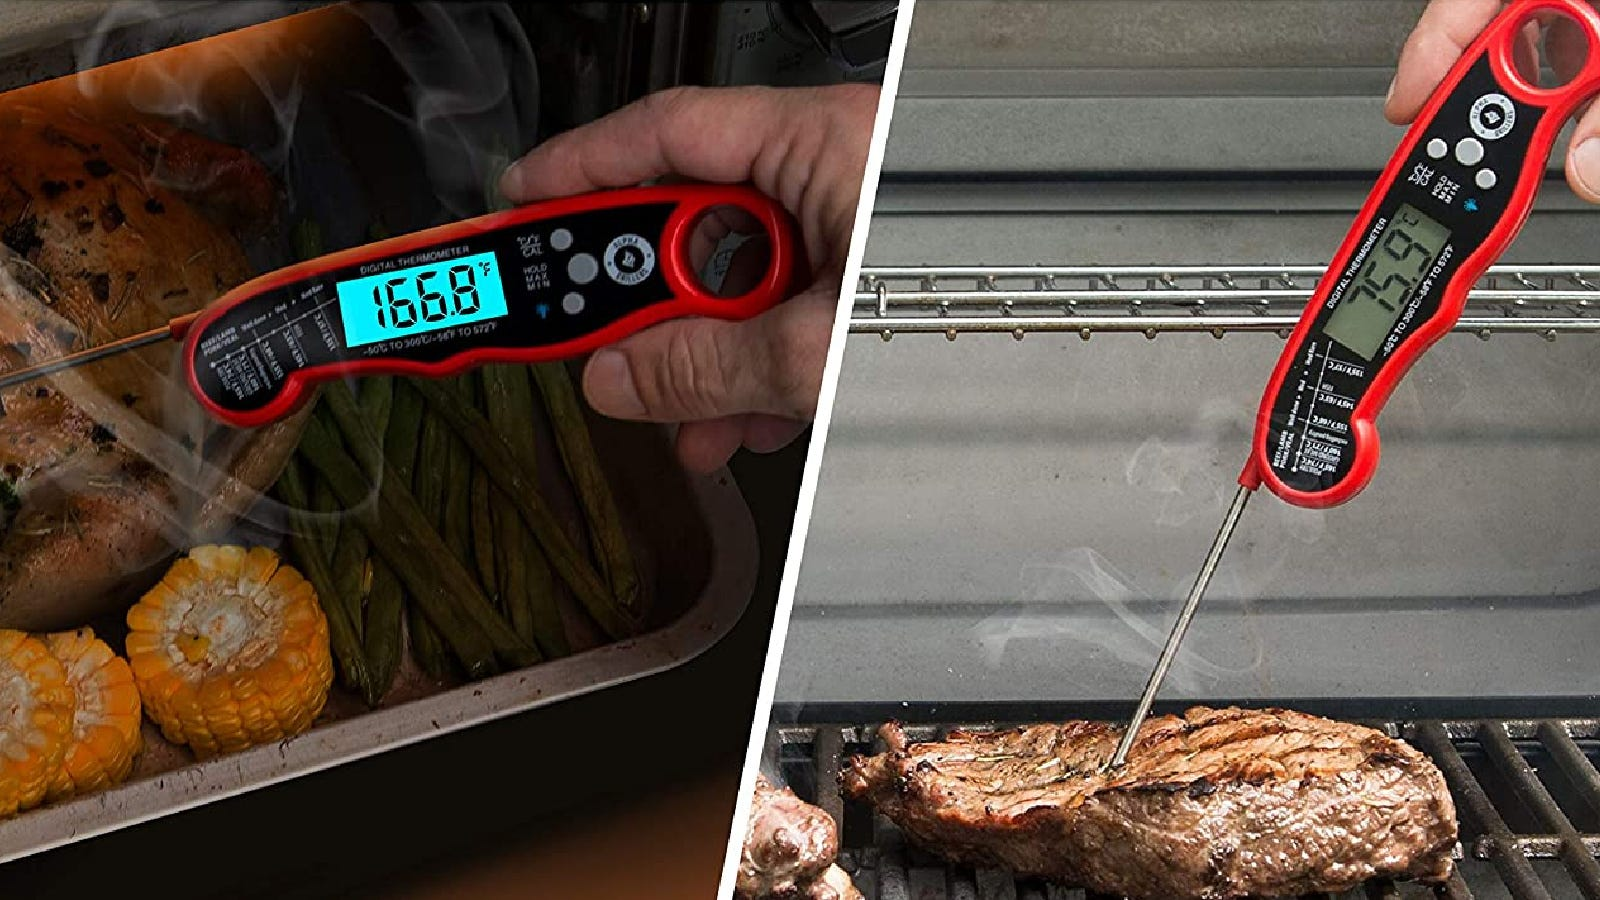 Twom images featuring someone use the Alpha Grillers instant read thermometer.